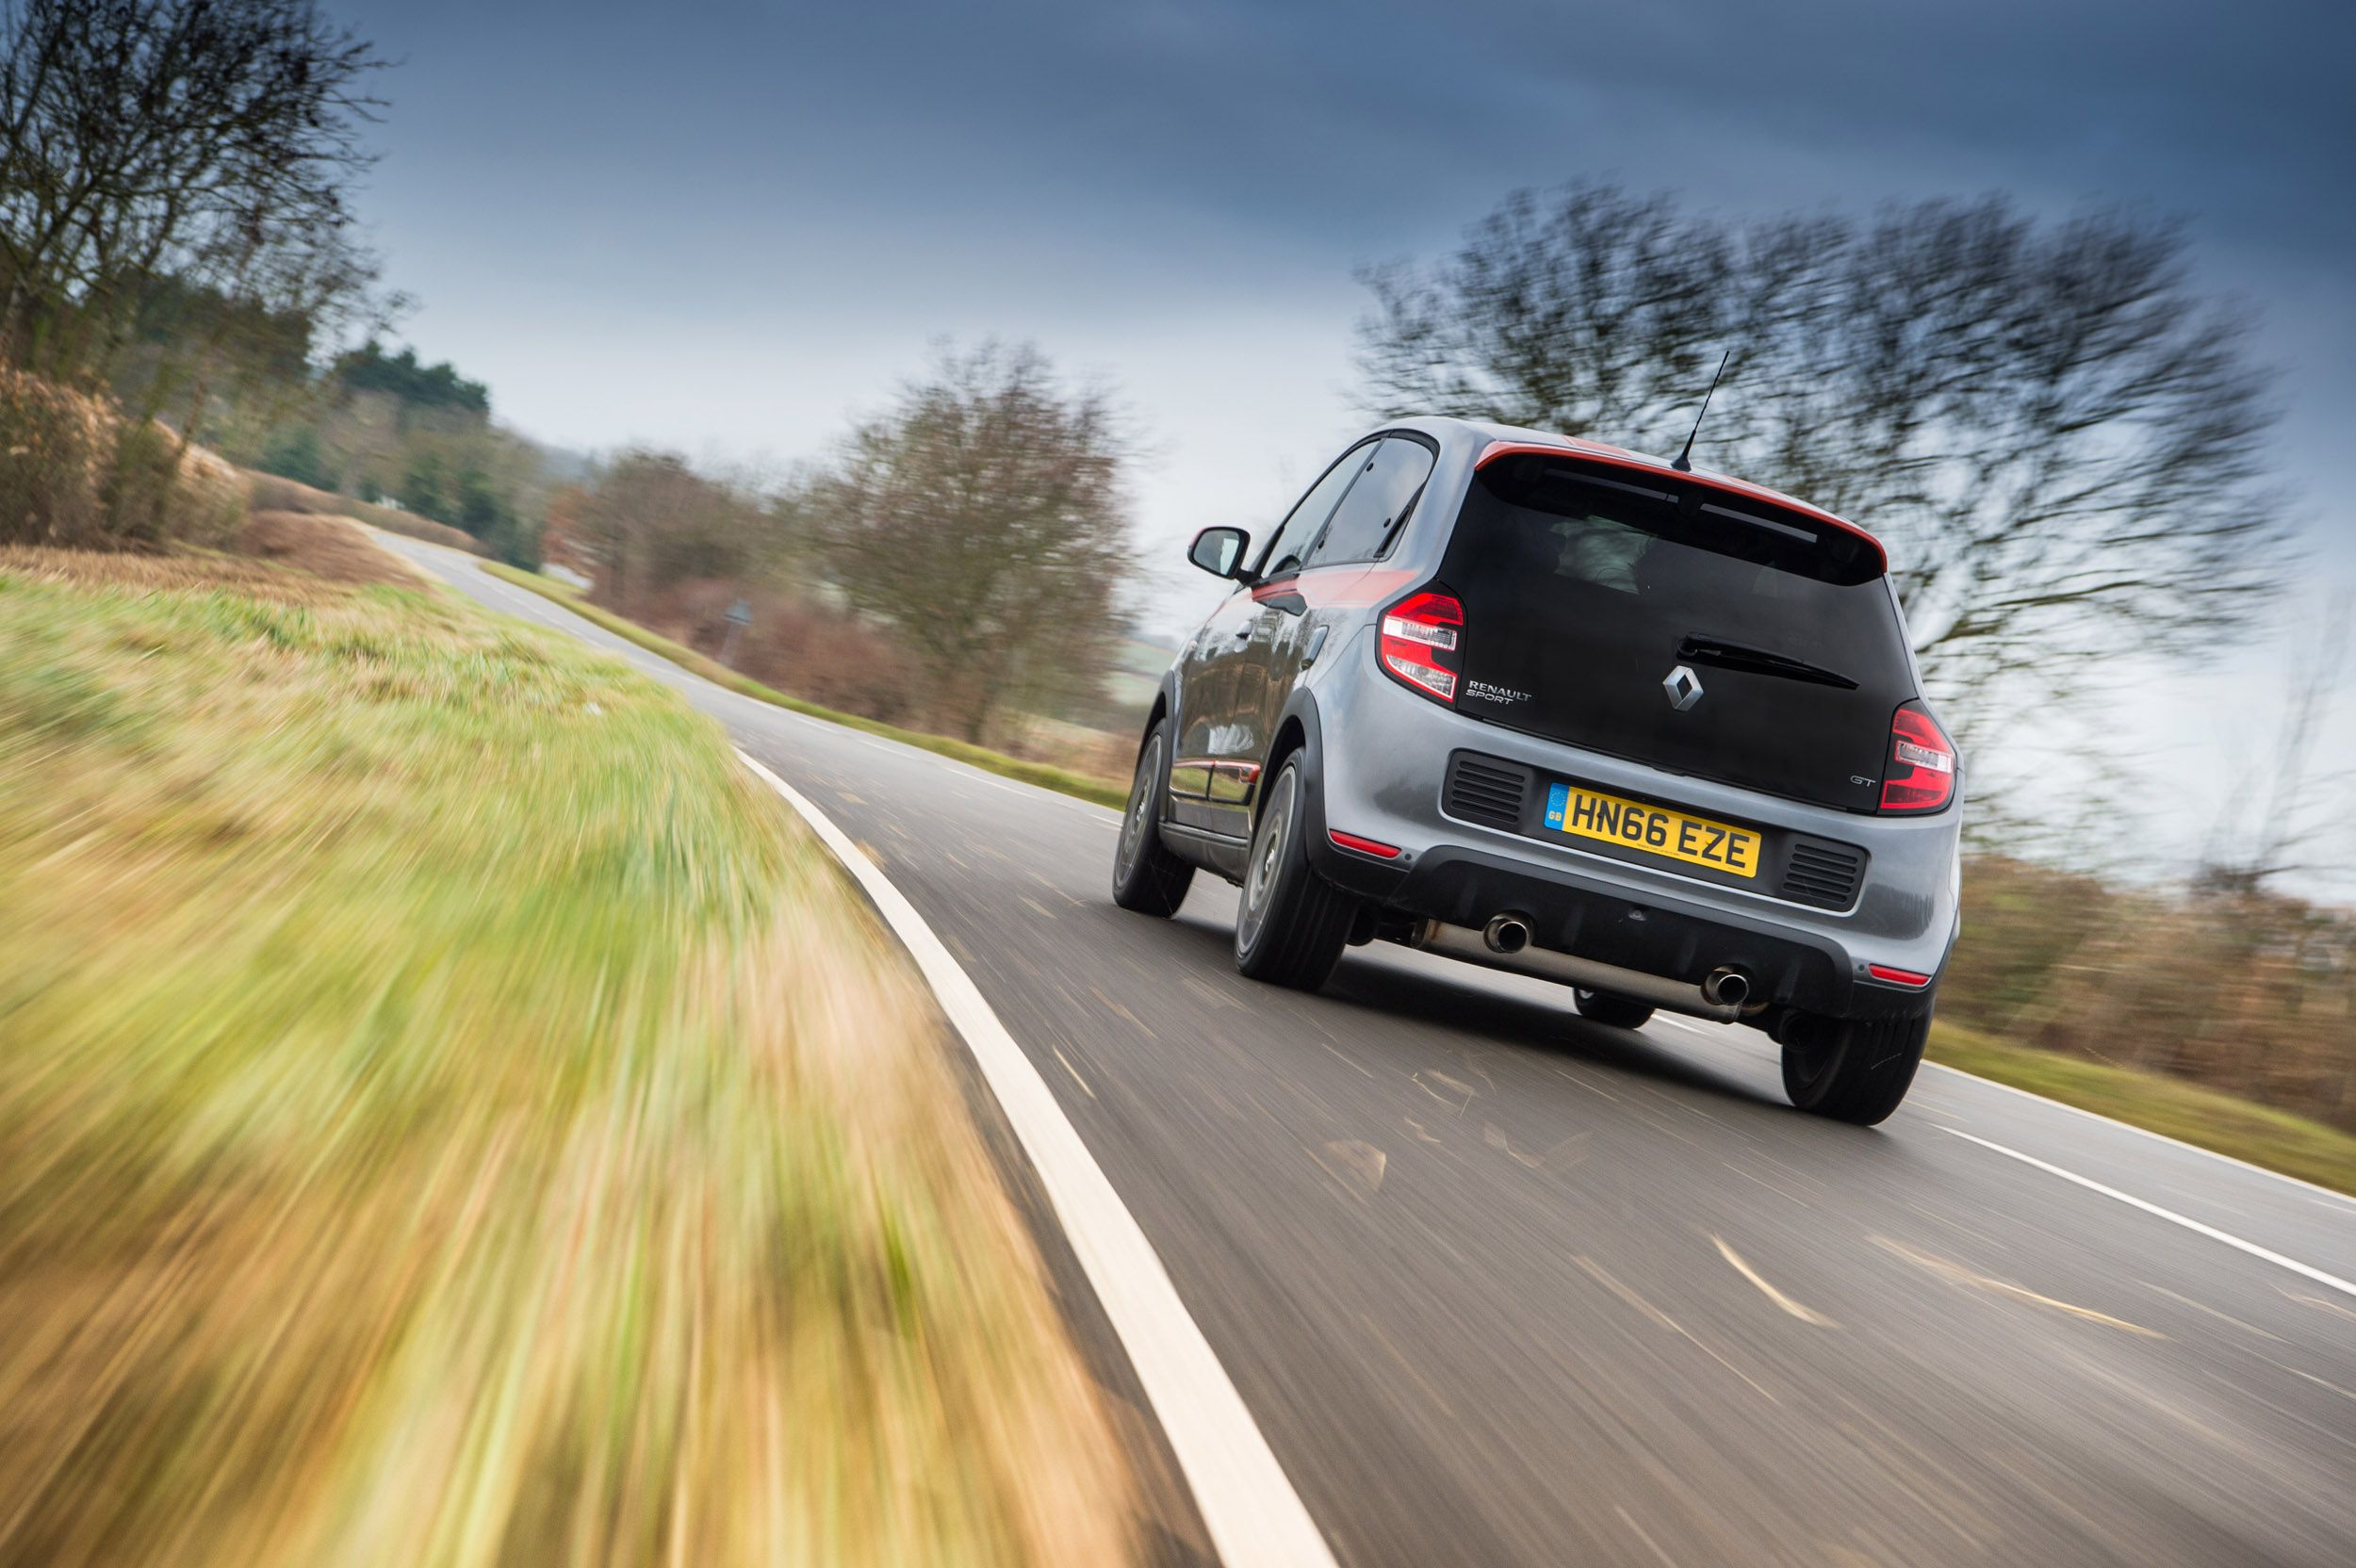 Best small cars 2018  EVOhttp://www.evo.co.uk/features/17942/best-small-cars-2018-pocket-rockets-reviewed-and-rated